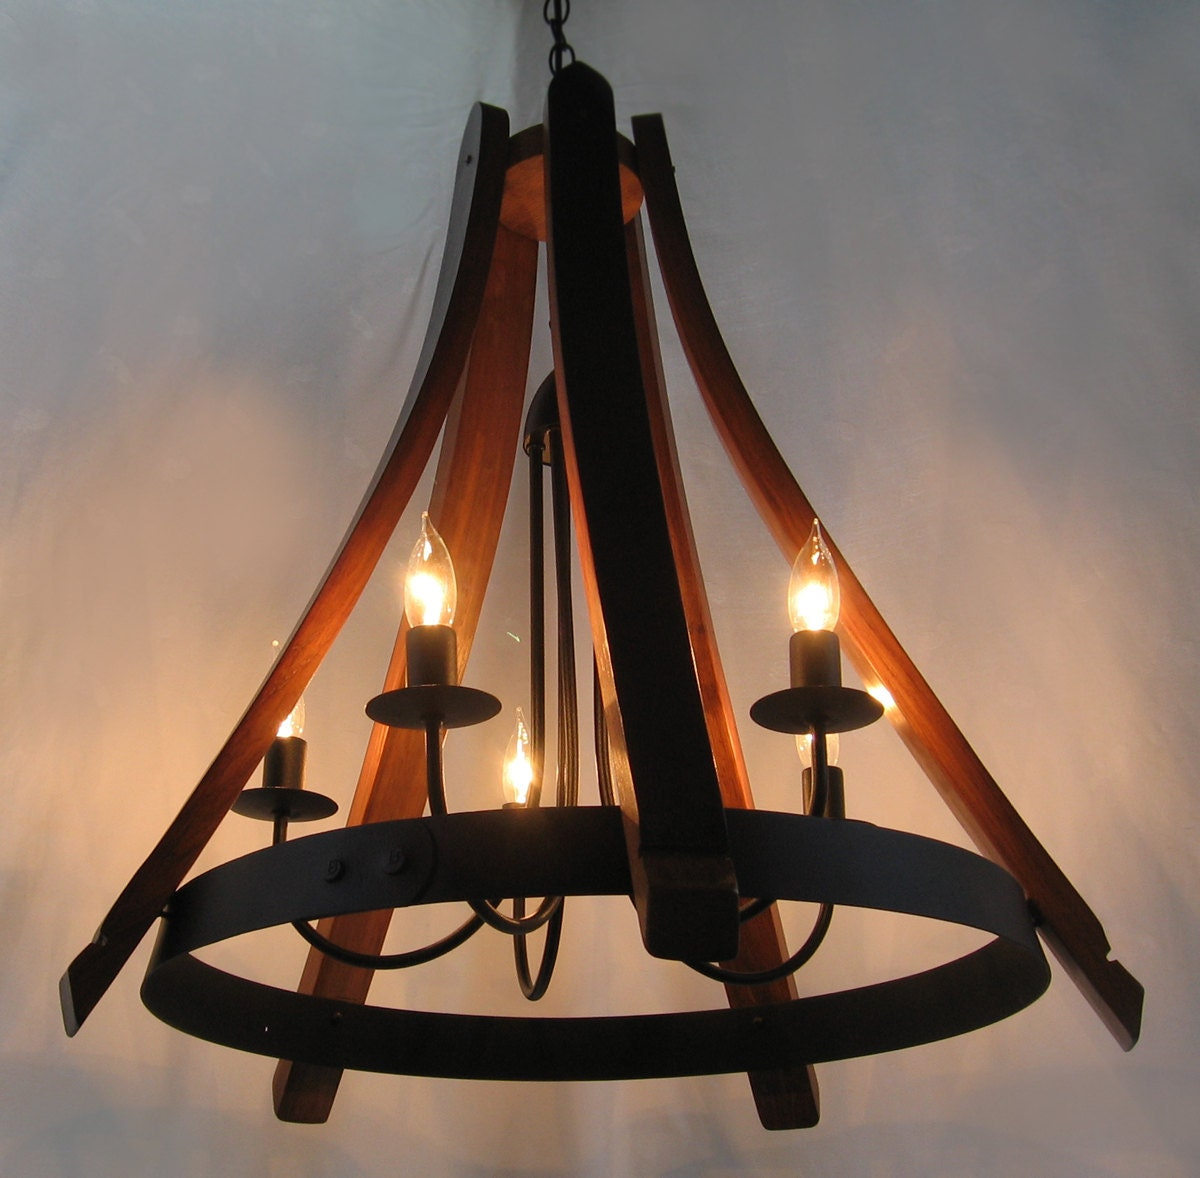 Cervantes wine barrel chandelier recycled oak staves and hoop - Can light chandelier ...